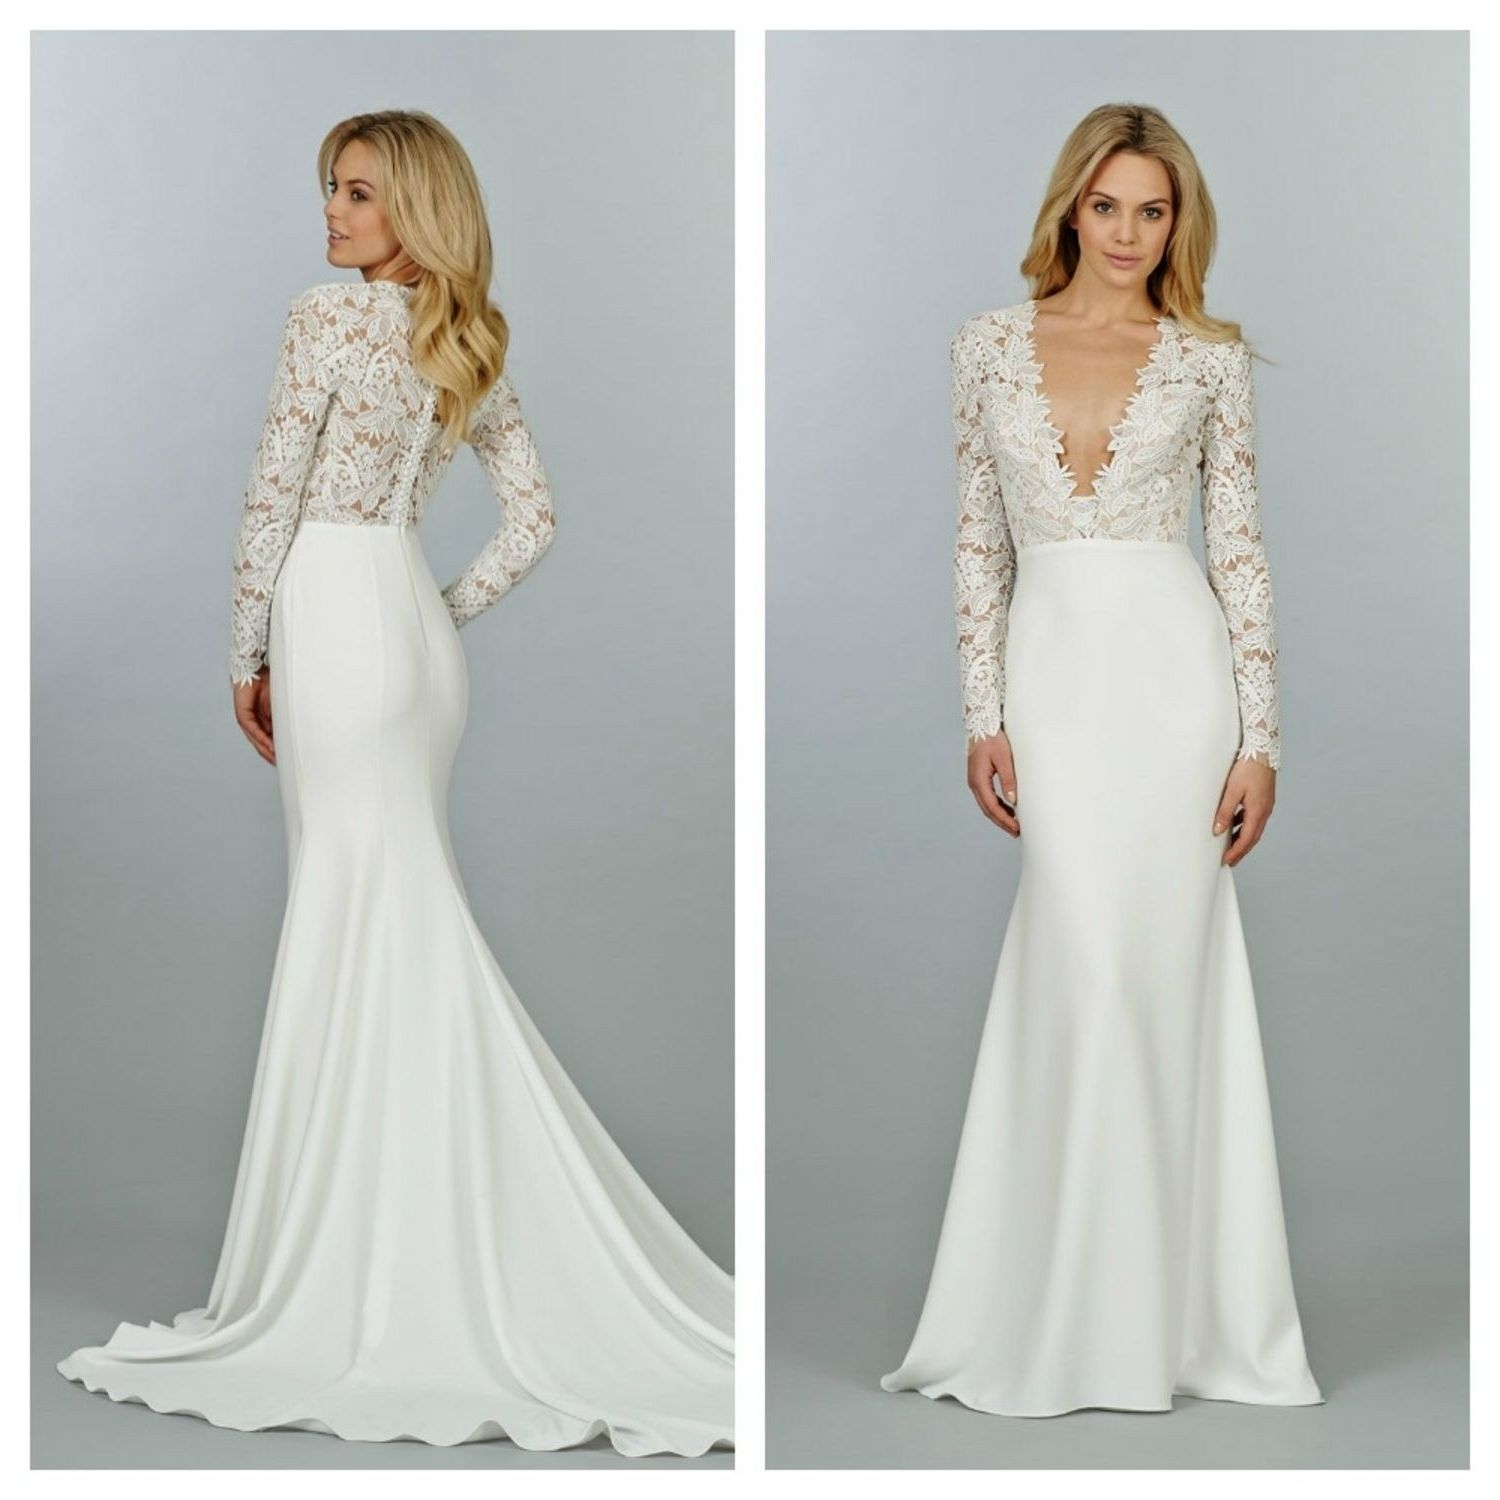 Kim Kardashian Givenchy Wedding Dress Look Alike | Wedding Dress ...